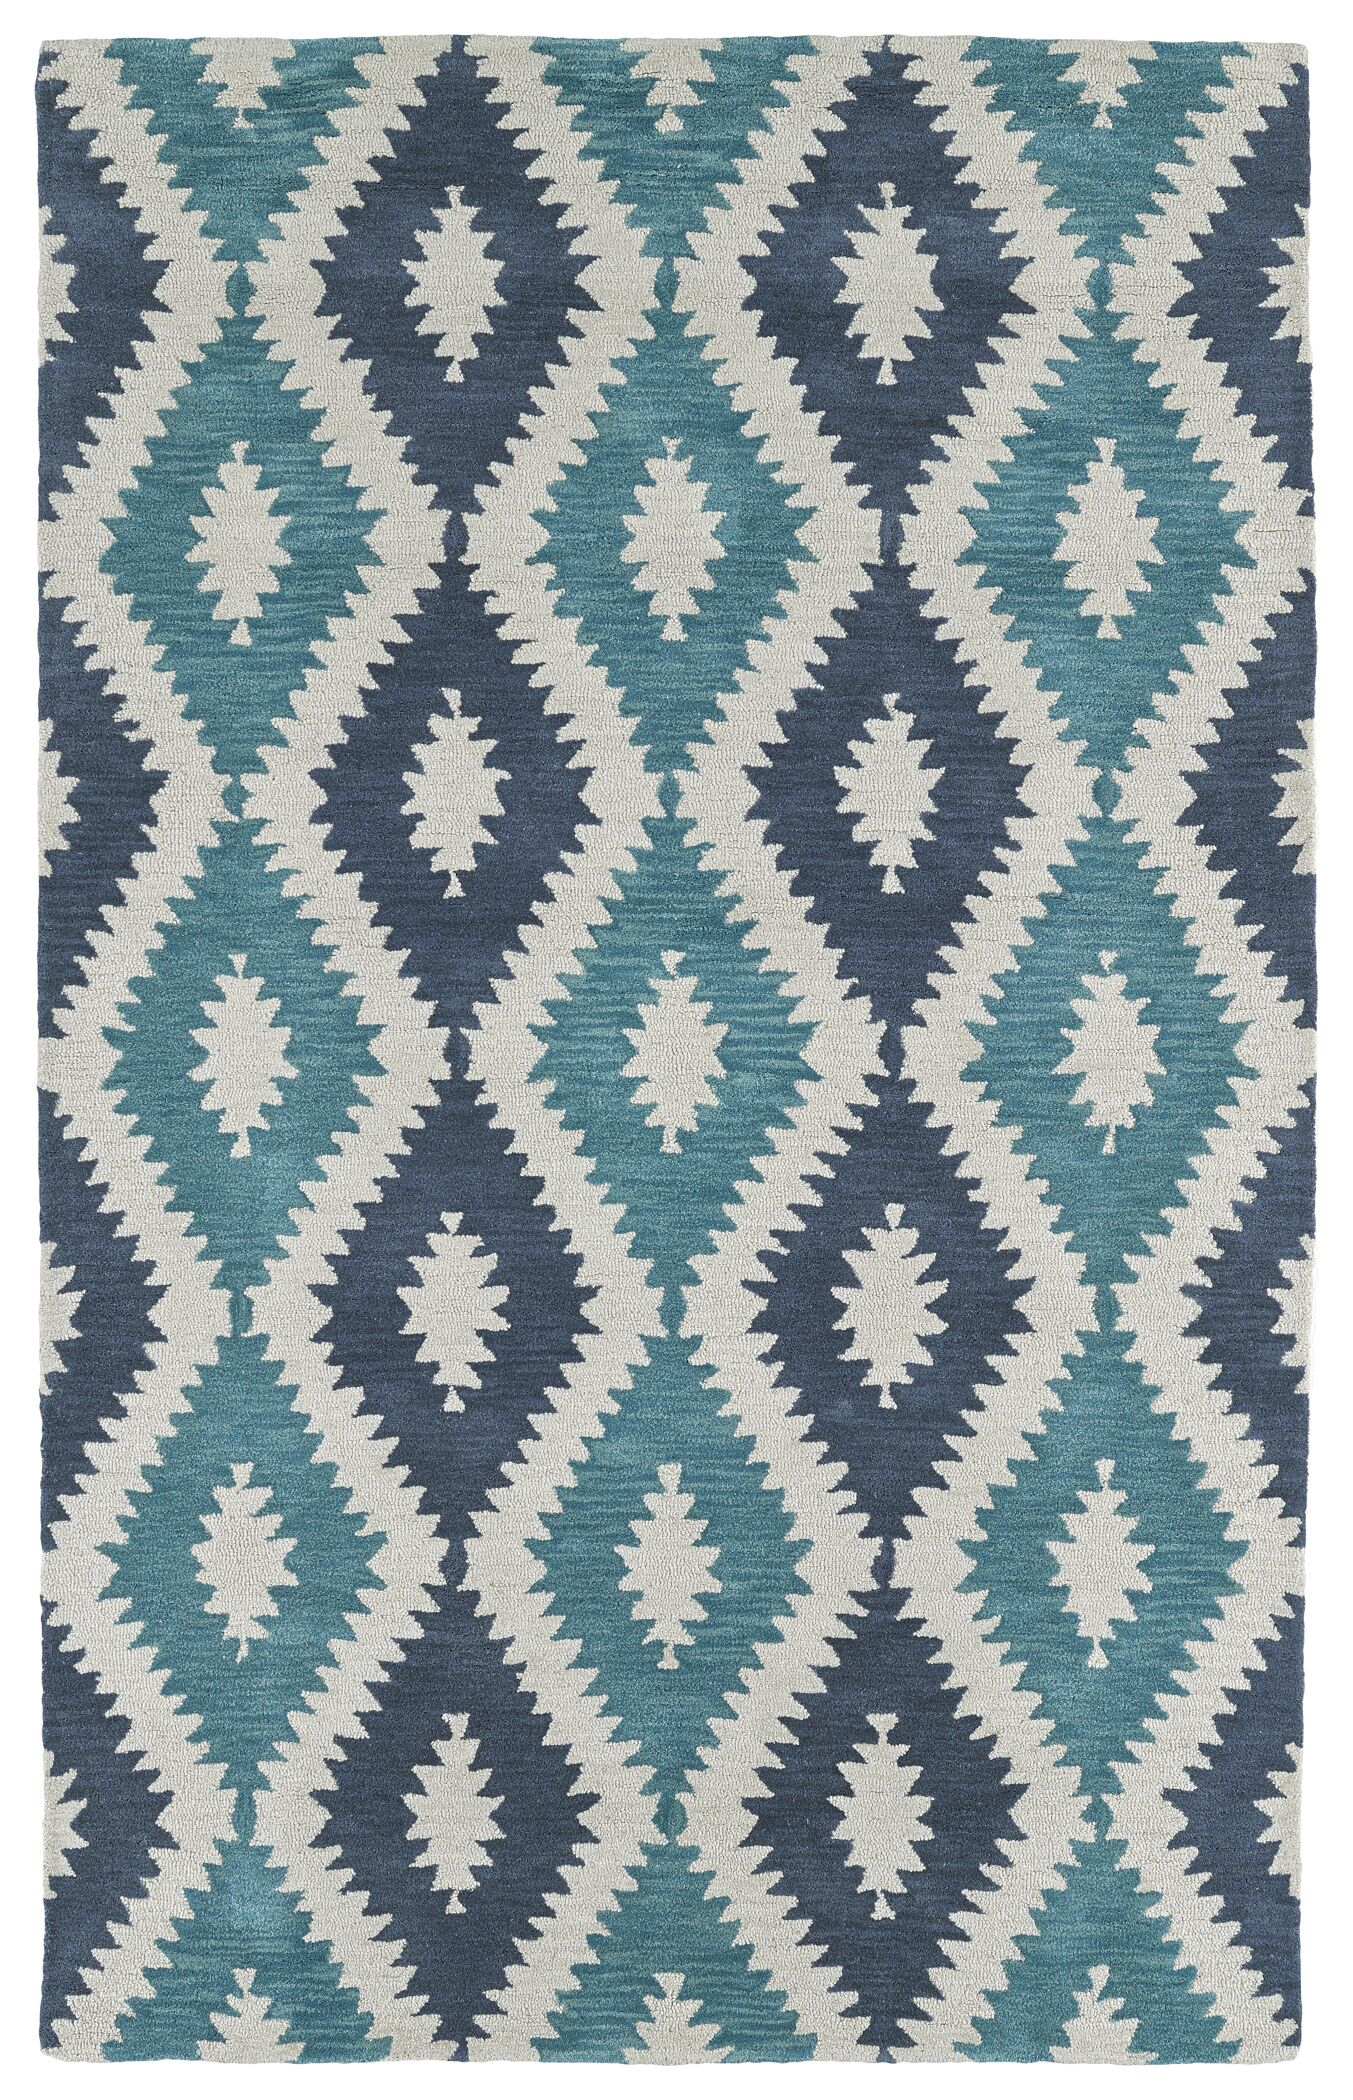 Hinton Charterhouse Hand-Tufted Turquoise Area Rug Rug Size: Rectangle 3'6